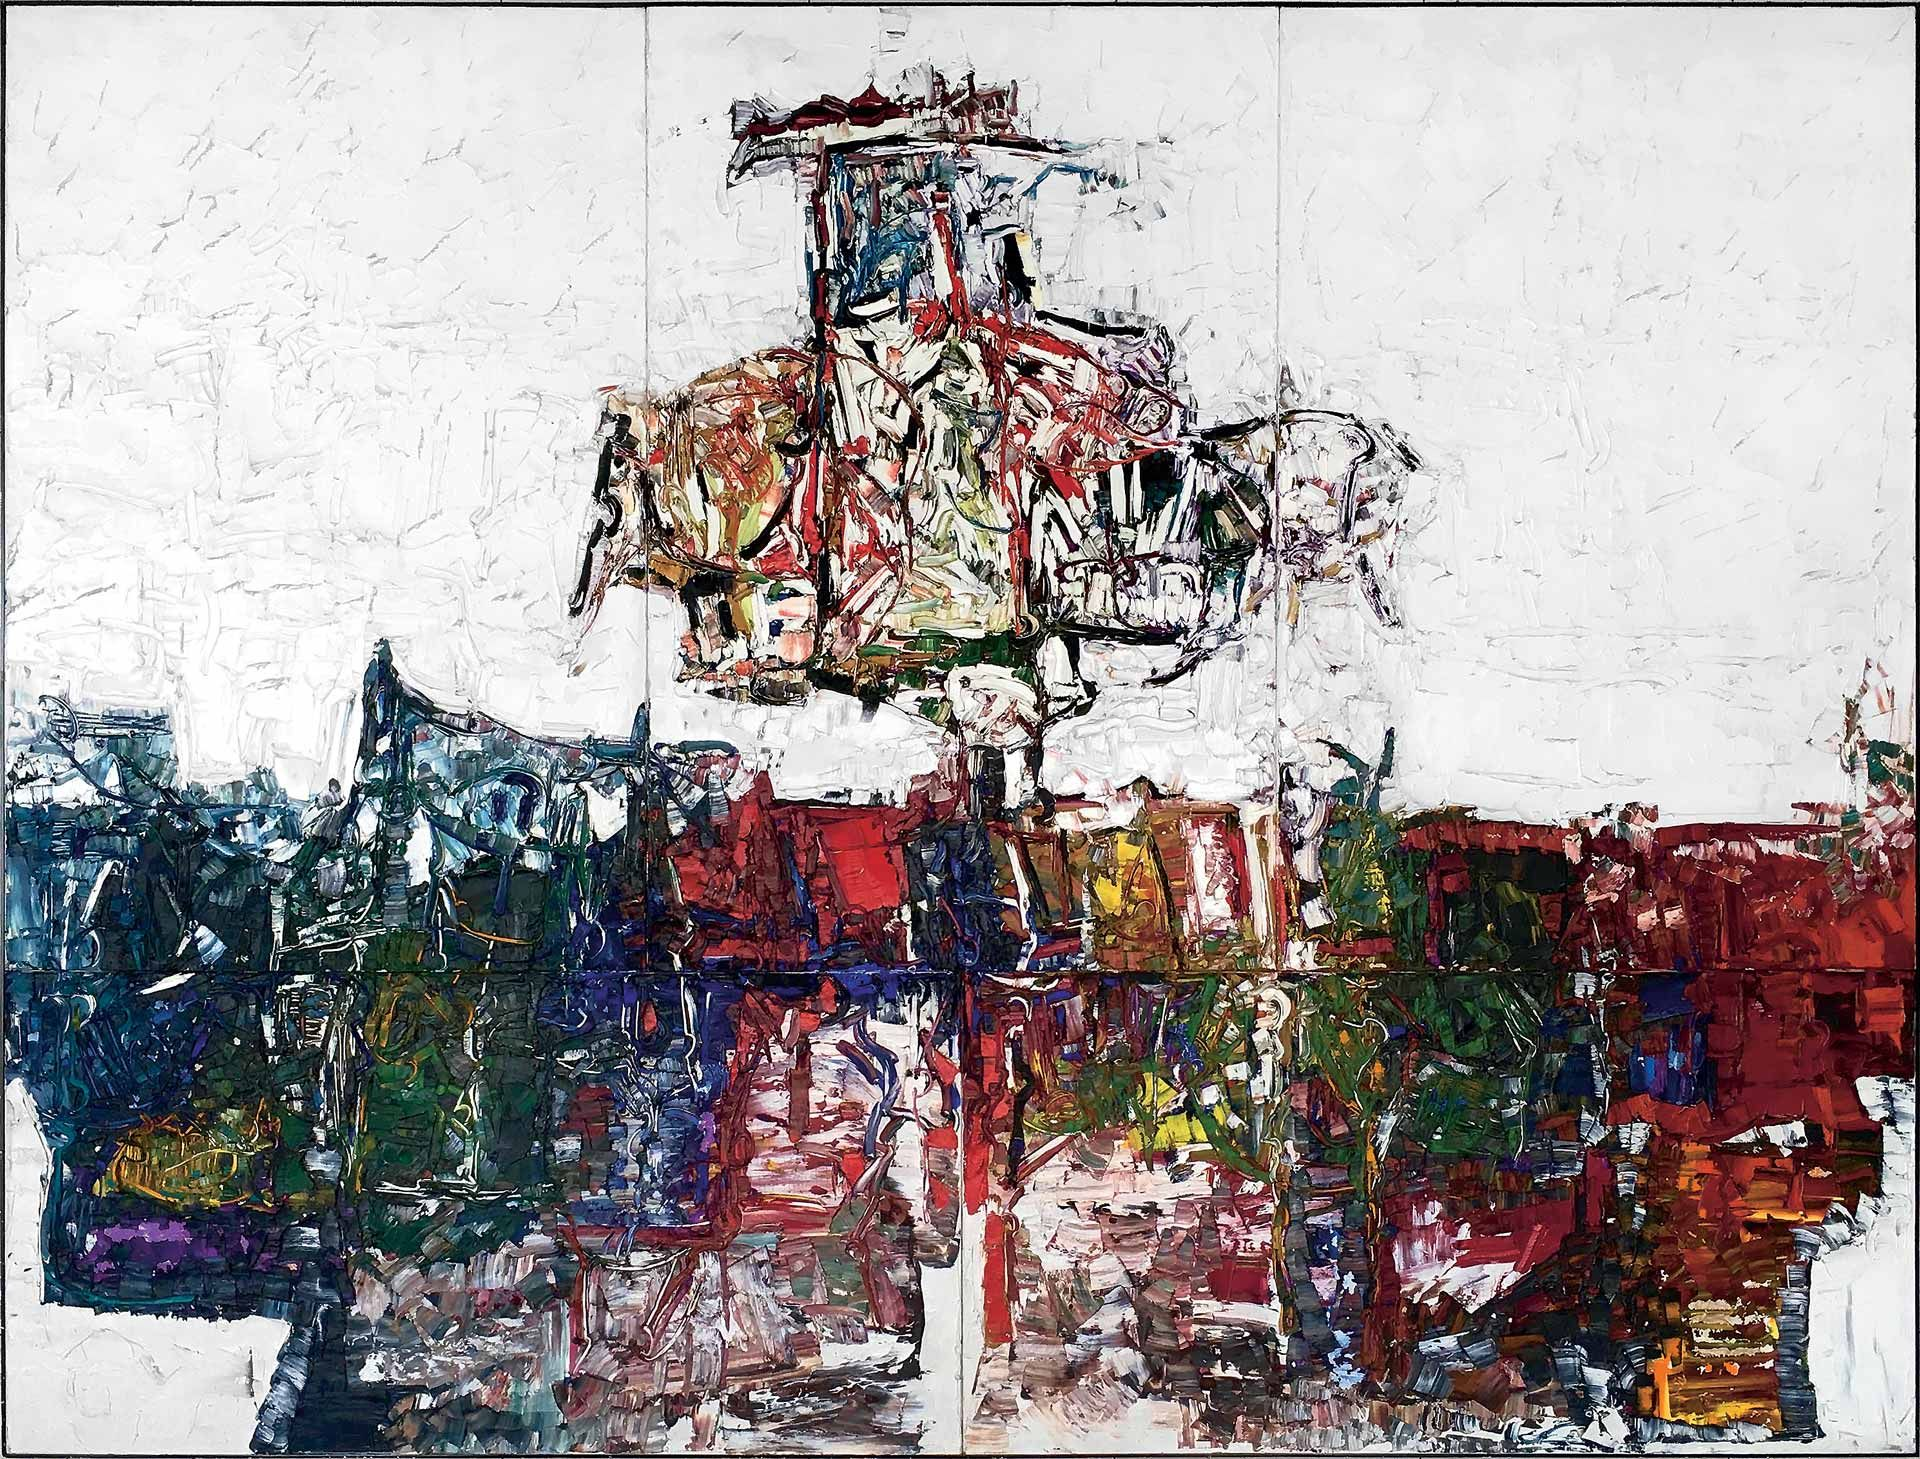 Jean Paul Riopelle (1923-2002), Point de rencontre – Quintette (polyptych), 1963, oil on canvas, 428 x 564 cm (5 panels). Centre national des arts plastiques, Paris. Inv. FNAC 90069. © Estate of Jean Paul Riopelle / SOCAN (2020). Photo CNAP